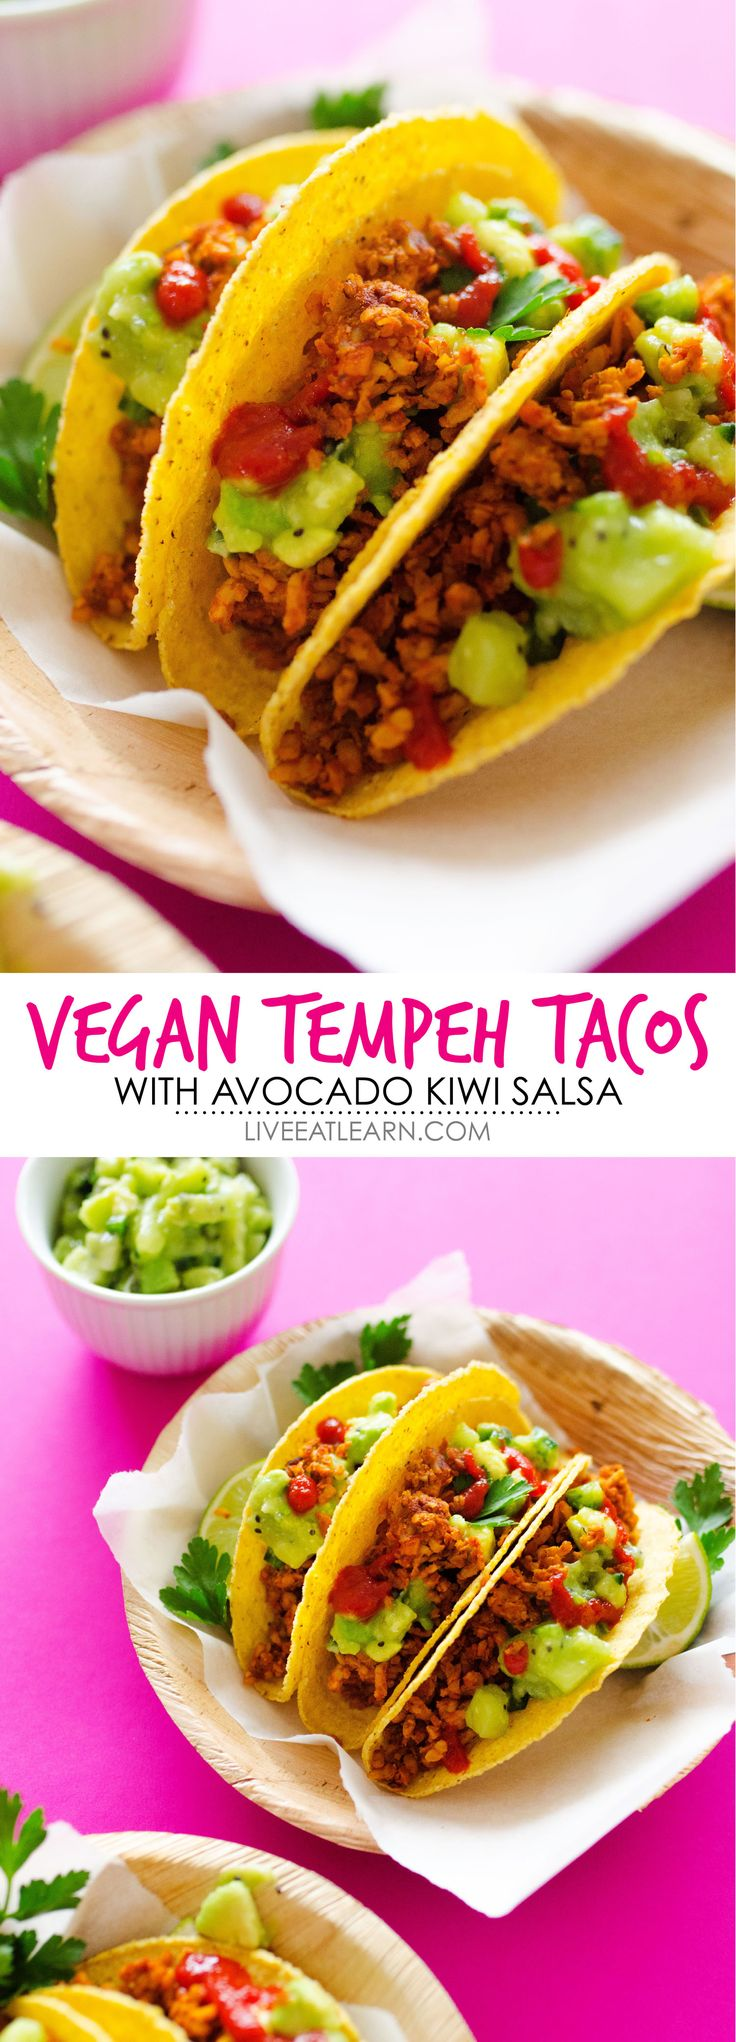 This healthy Tempeh Tacos recipe tastes just like meat, and with Avocado Kiwi Salsa, it's a refreshingly unique, flavor-packed, and delicious vegetarian meal you're going to love. Perfect for Meatless Monday, Taco Tuesday, or whenever you don't feel like cooking. // Live Eat Learn